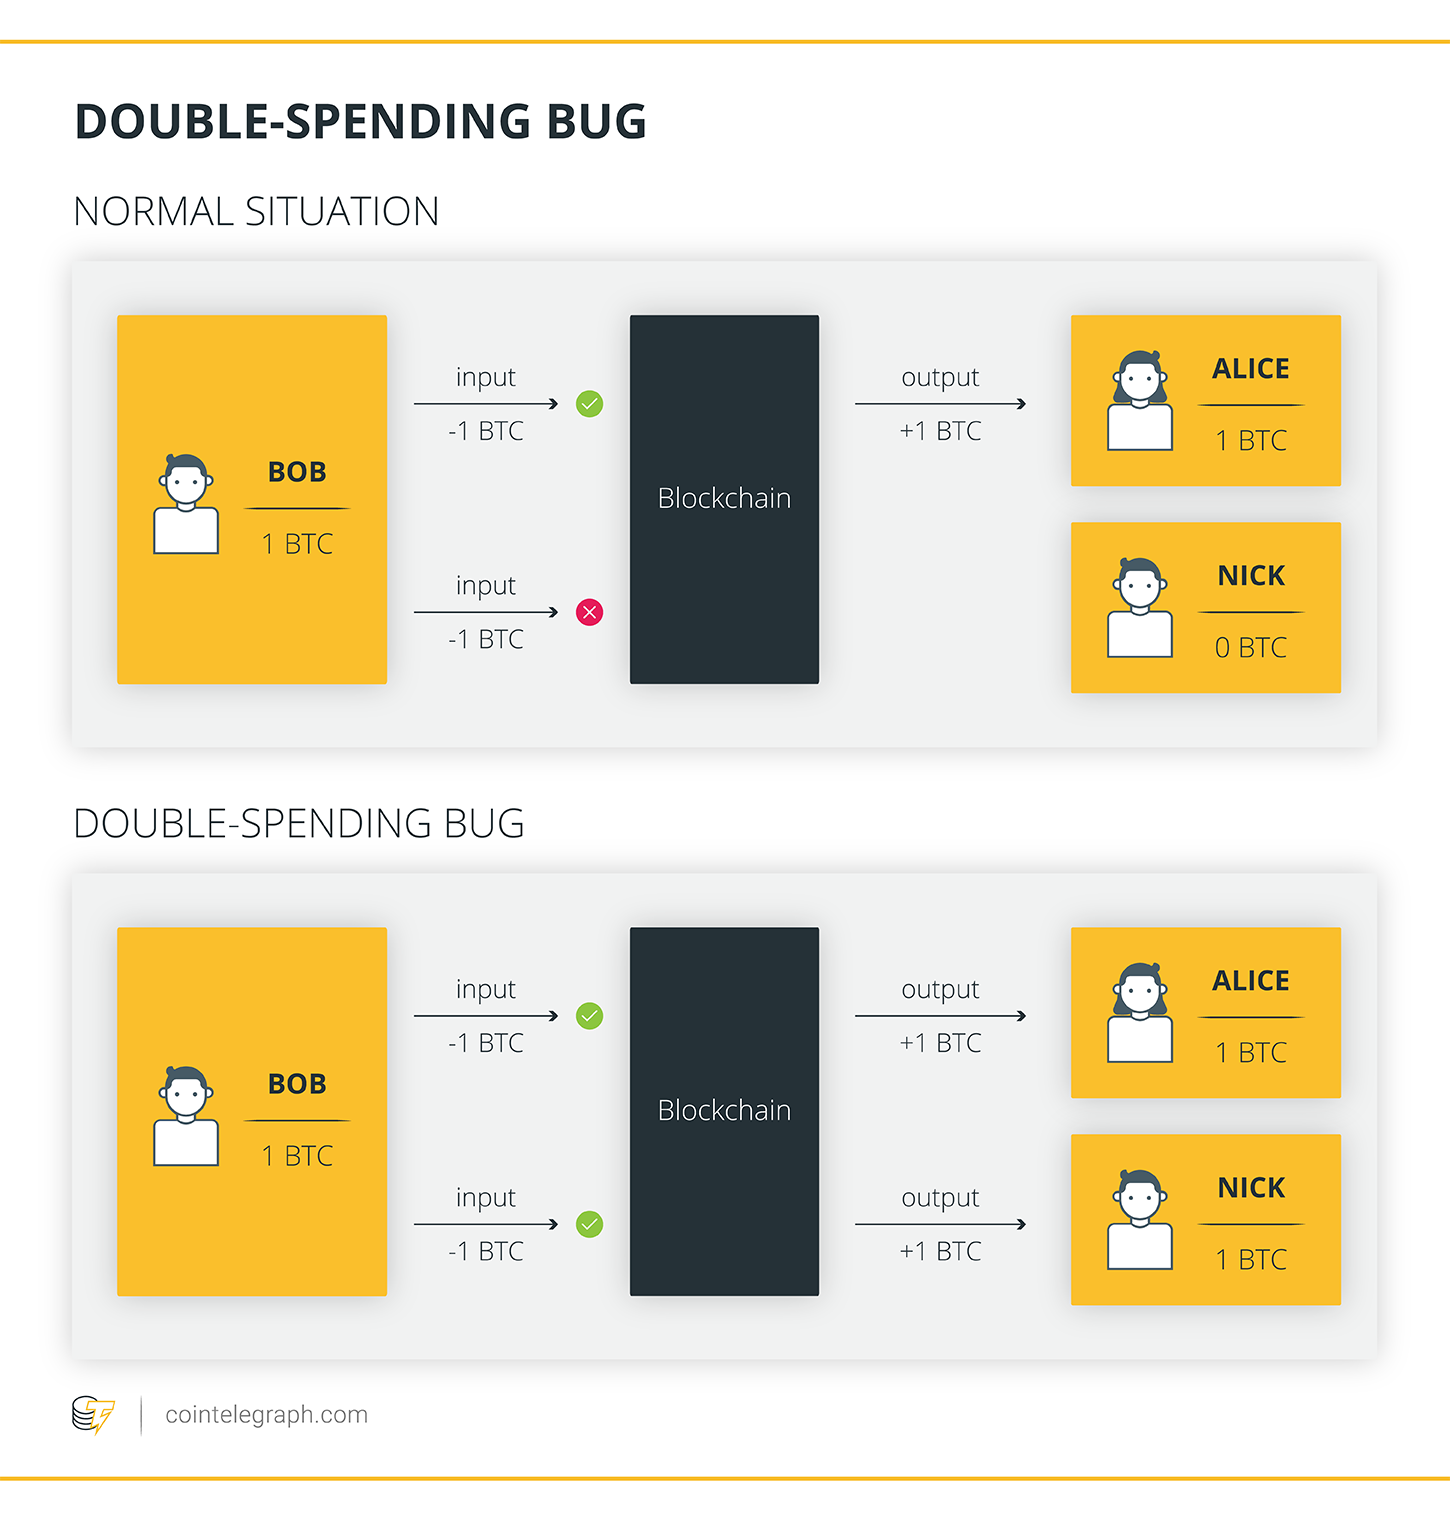 Double-spending bug